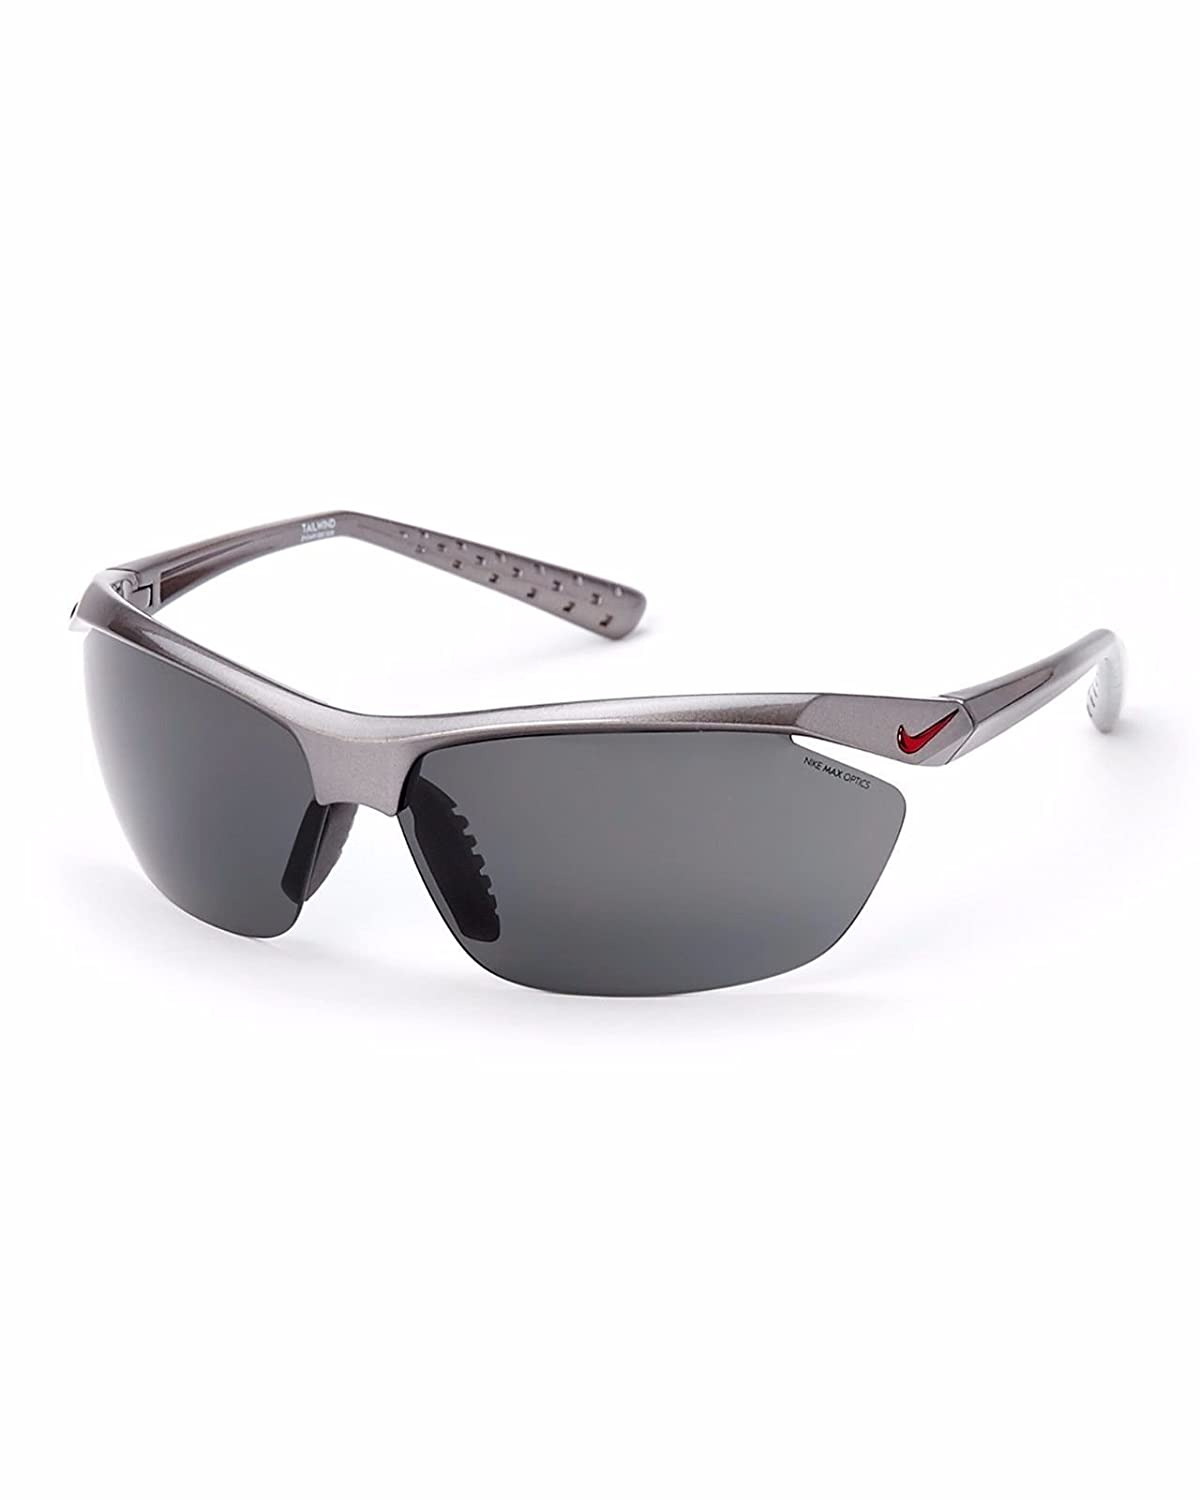 4b92c9897886 Nike Tailwind Fade Graphite Sunglasses with Grey Lens: Amazon.co.uk: Sports  & Outdoors